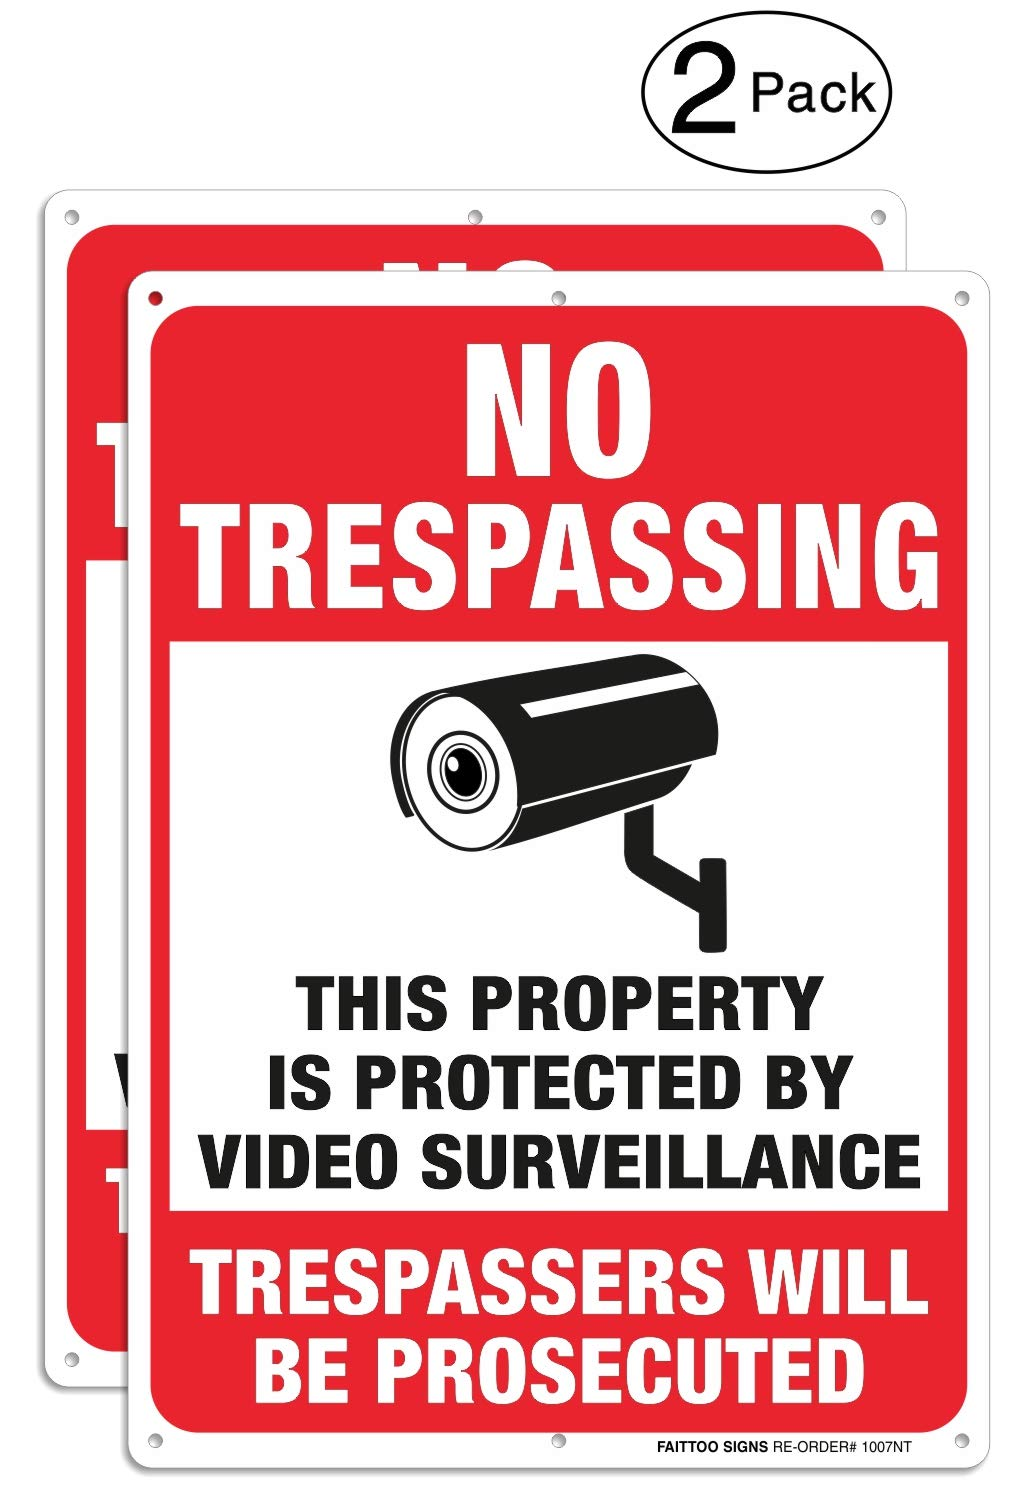 2 Pack Video Surveillance Signs, No Trespassing Violators Will Be Prosecuted Metal Reflective Warning Sign, 10 x 7 Inches 0.40 Aluminum Indoor Or Outdoor Use for Home Business CCTV Security Camera